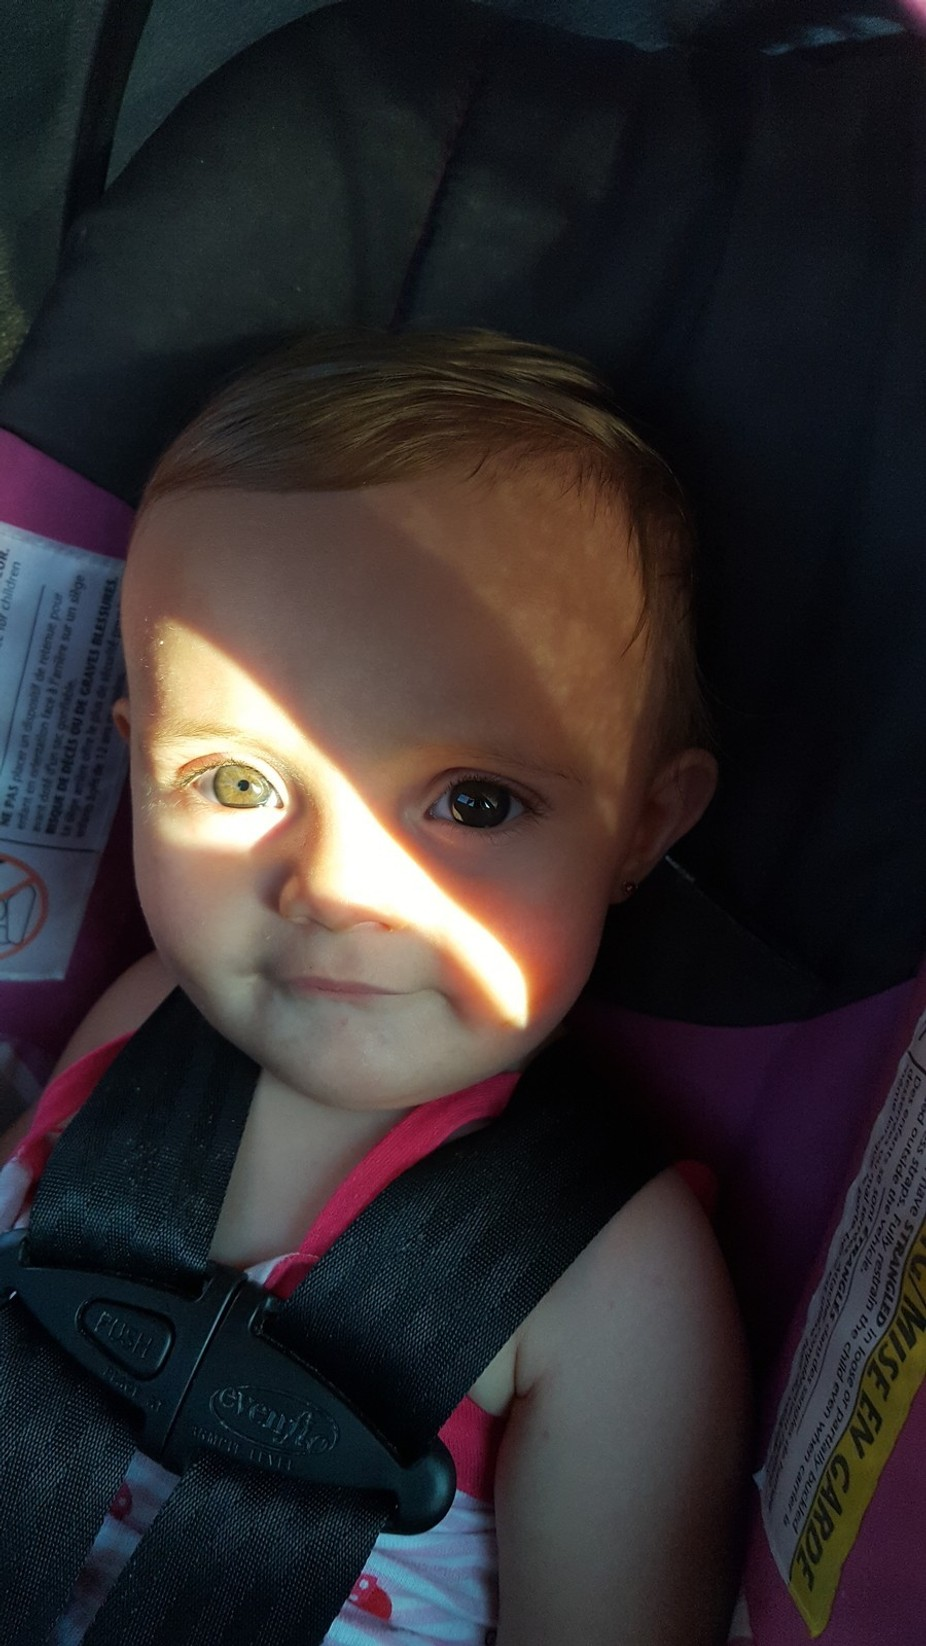 She was sitting in her car seat with the sun shinning in her eye